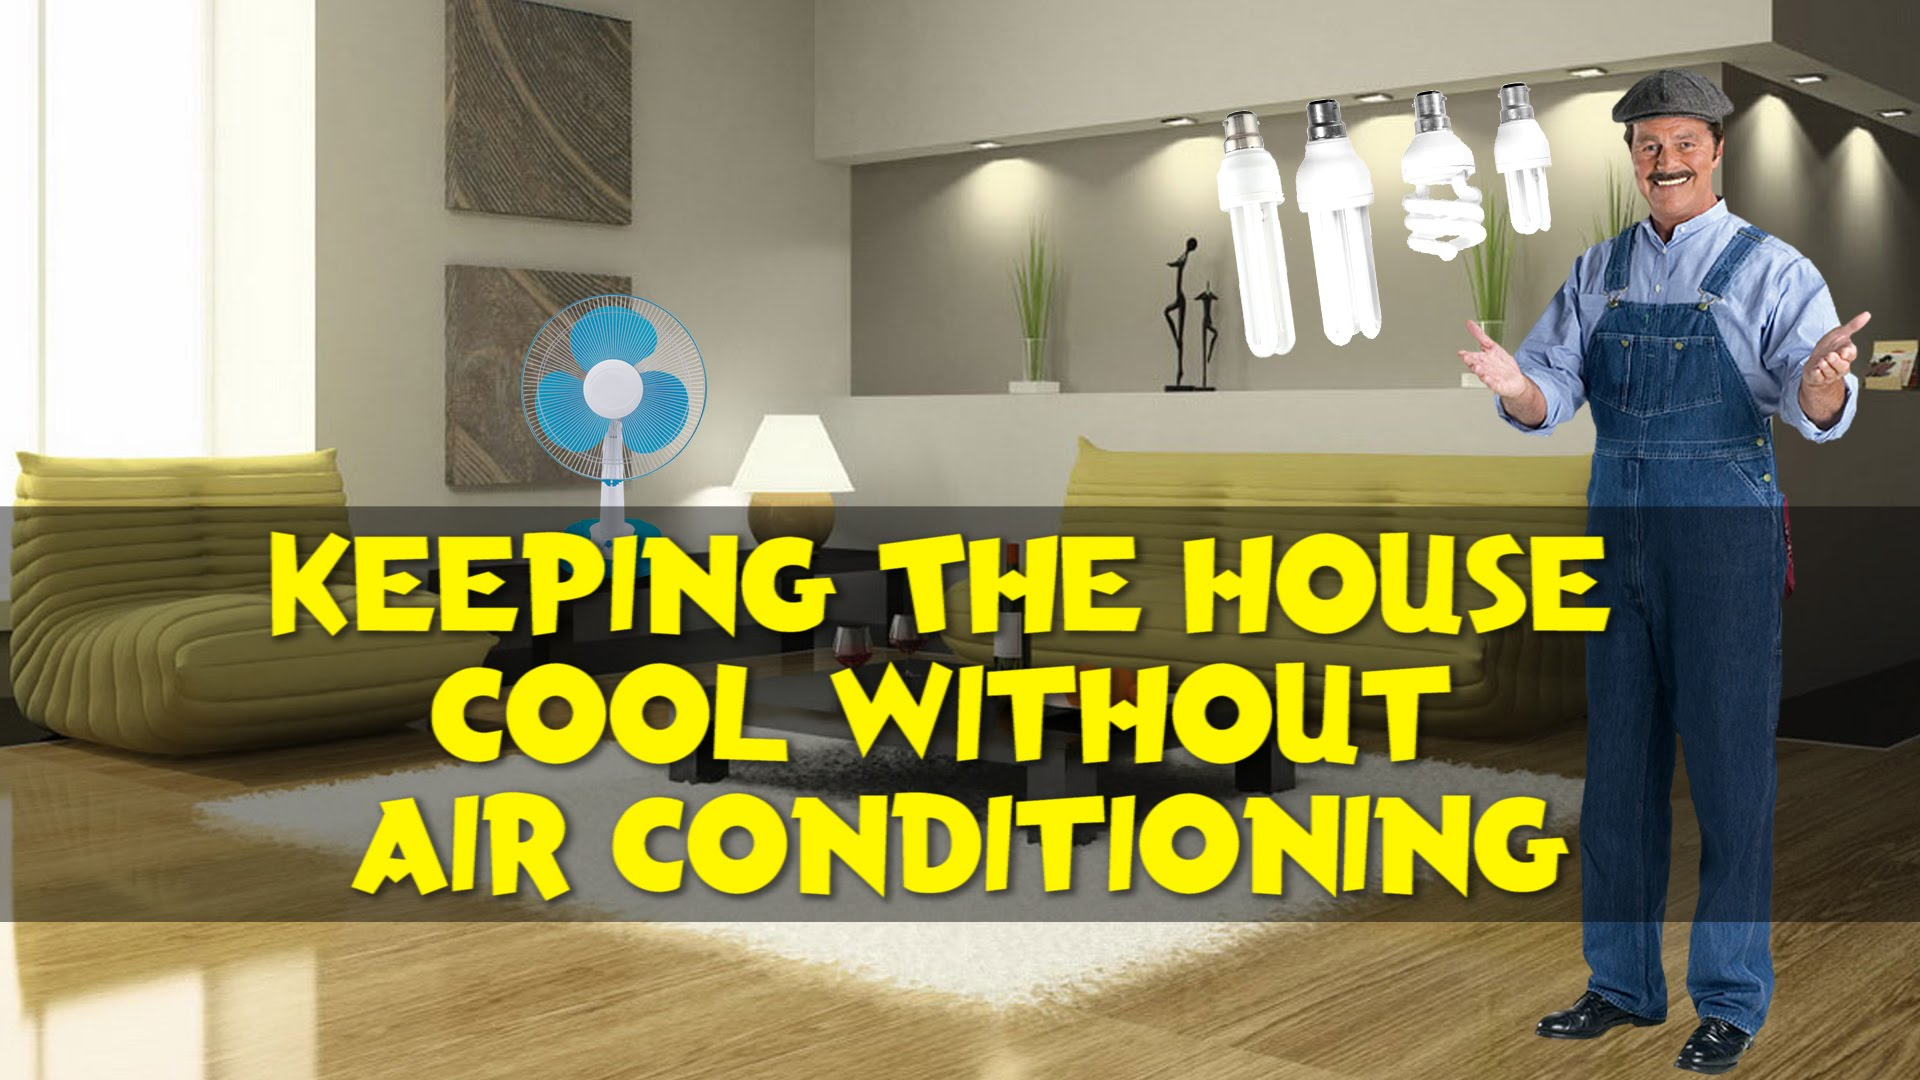 how-to-keep-house-cool-without-airconditioning